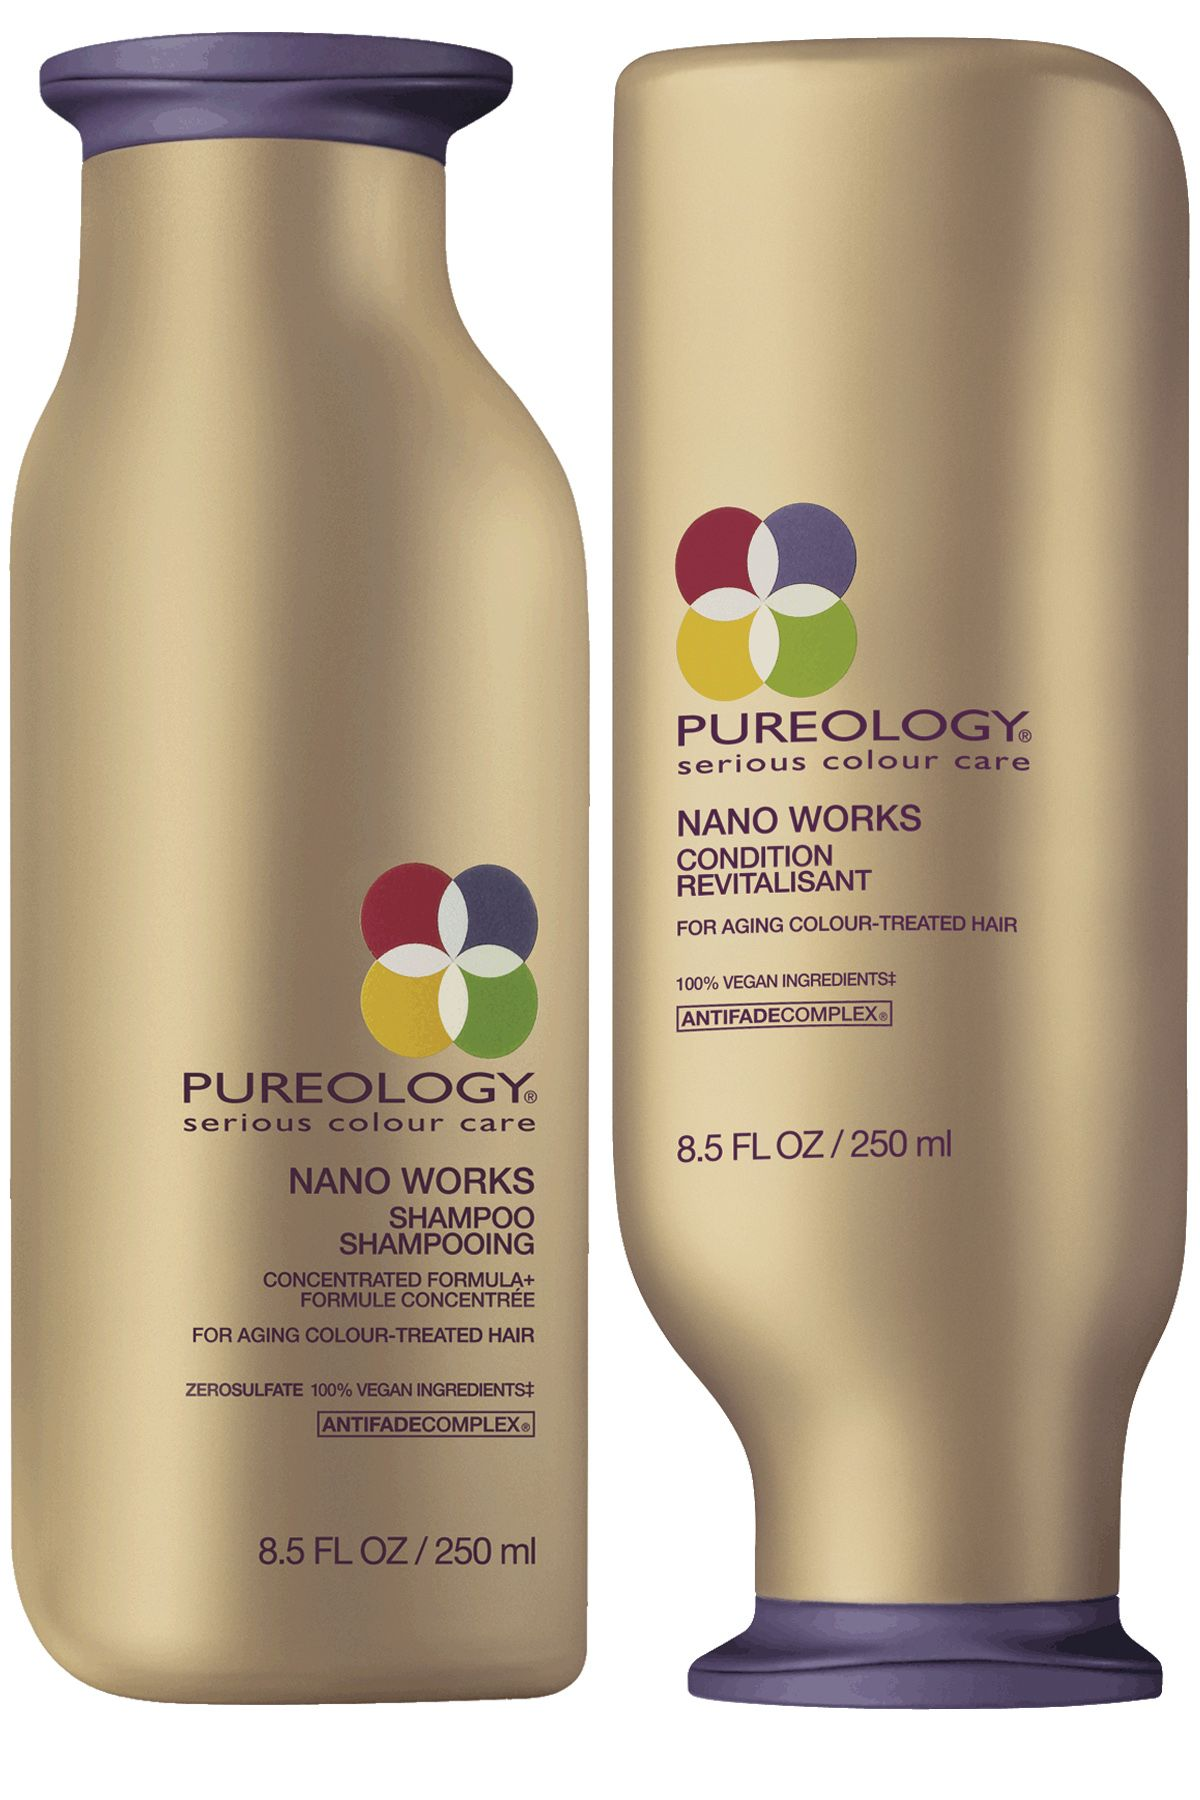 "Remember, your scalp is an extension of your skin and requires the same antiaging TLC as your face. Otherwise, your locks become vulnerable to being brittle and lackluster. Look for shampoos and conditioners containing ingredients, like vitamin E, panthenol, and coconut oil, that boost strength, shine, and smoothness. We like <strong>Pureology's </strong>NanoWorks line, $50 each, <a target=""_blank"" href=""http://www.ulta.com/ulta/browse/productDetail.jsp?productId=xlsImpprod3410071"">ulta.com</a> and <strong>Wella Professionals</strong> Age Restore Shampoo,$13, and Restoring Treatment, $12,<a target=""_blank"" href=""http://www.wella.com/professional/en-EN/product/care/age-restoring-shampoo-for-coarse-hair"">wella.com</a>"